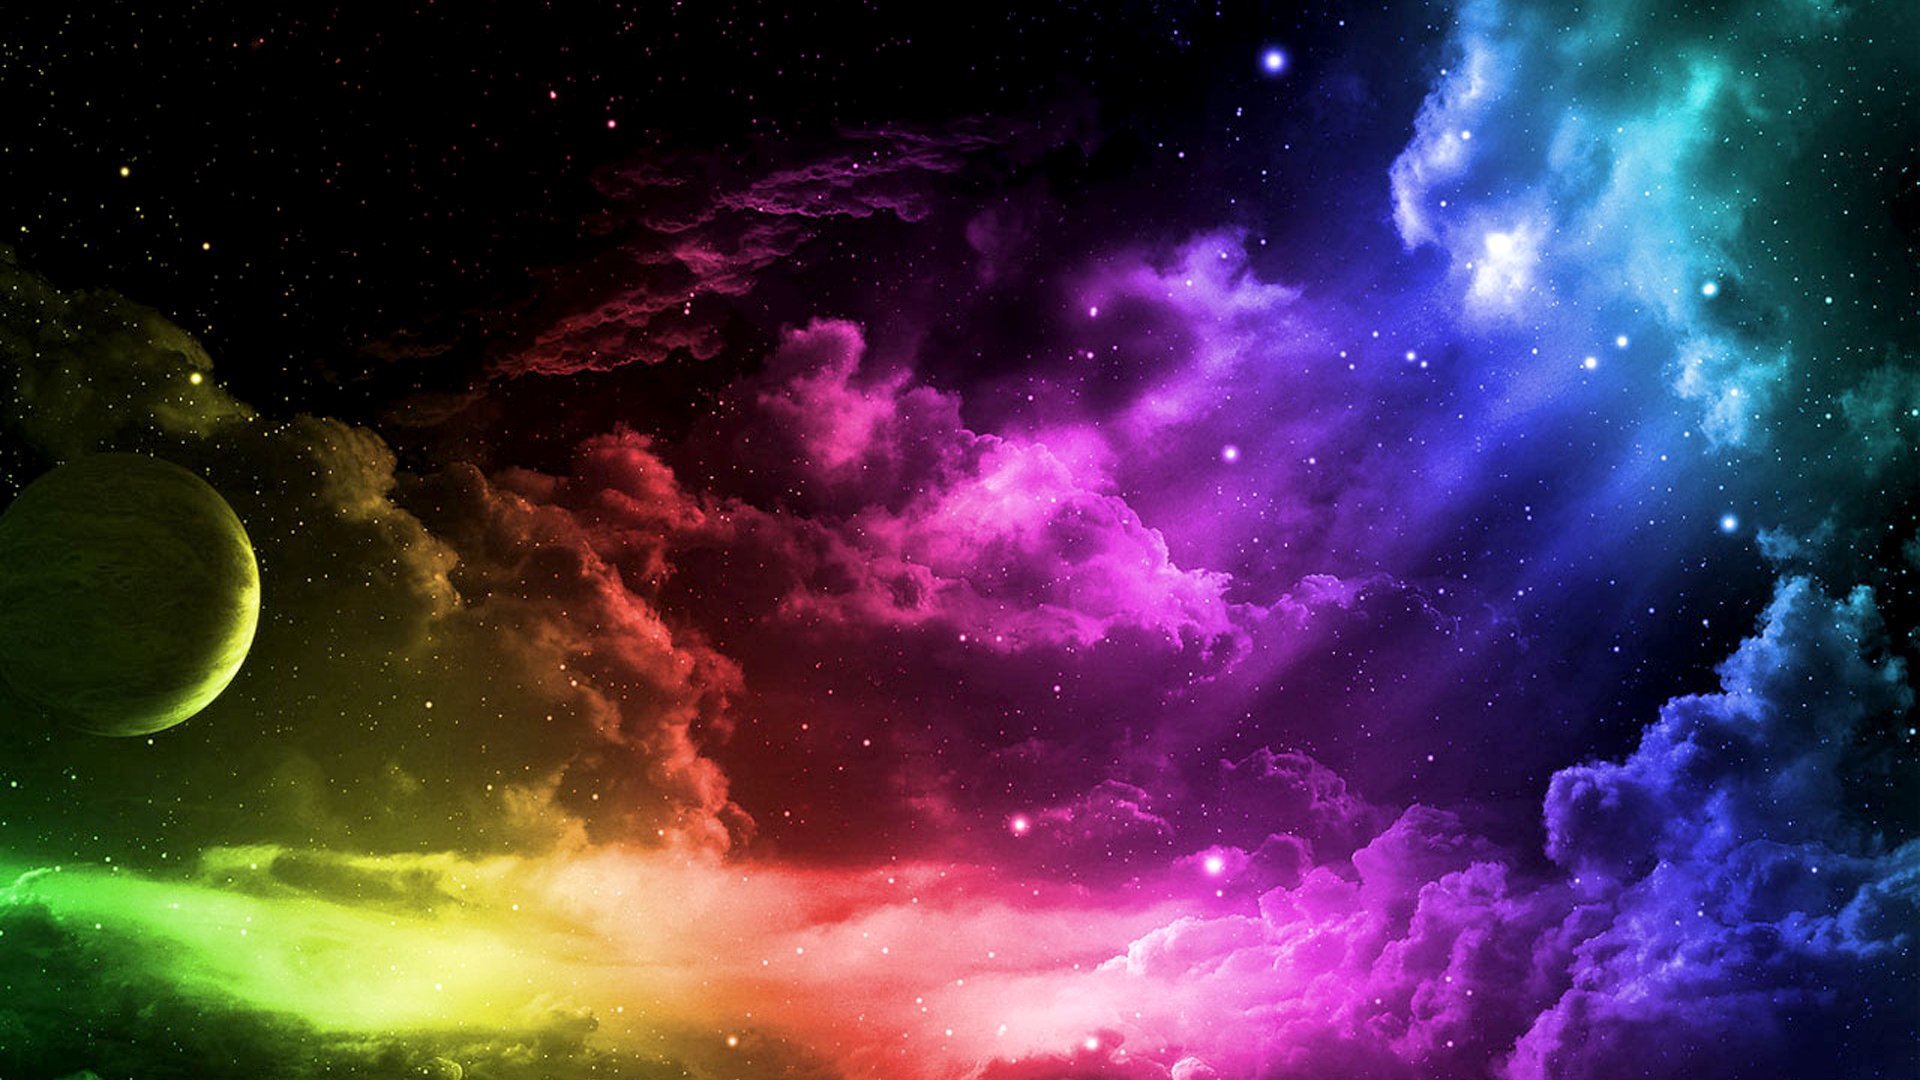 http://www.technosamrat.com/wp-content/uploads/2012/10/Colorful-Sky-Desktop-Background.jpg